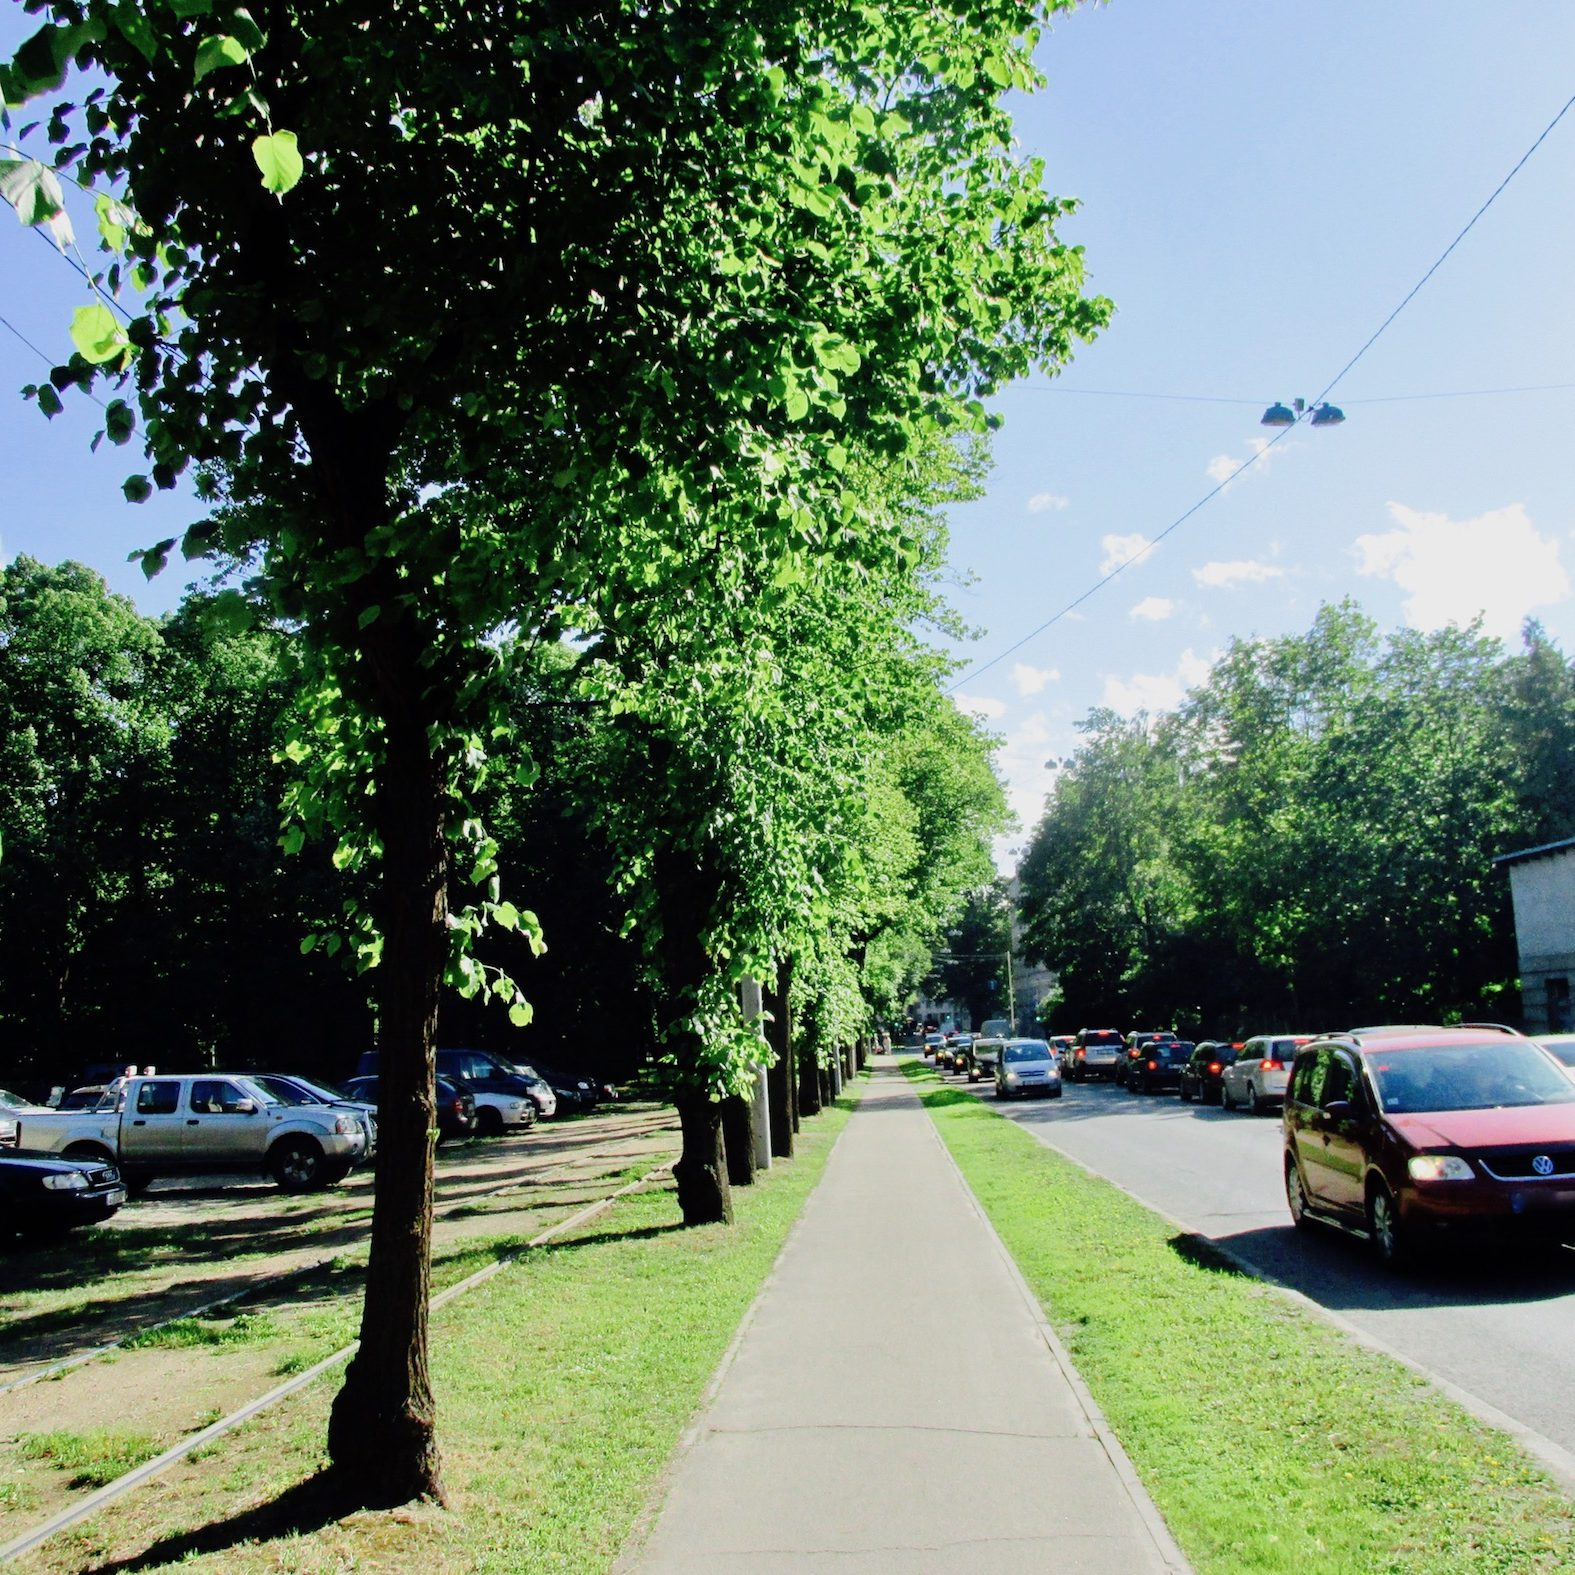 brasa-riga-bike-path-green